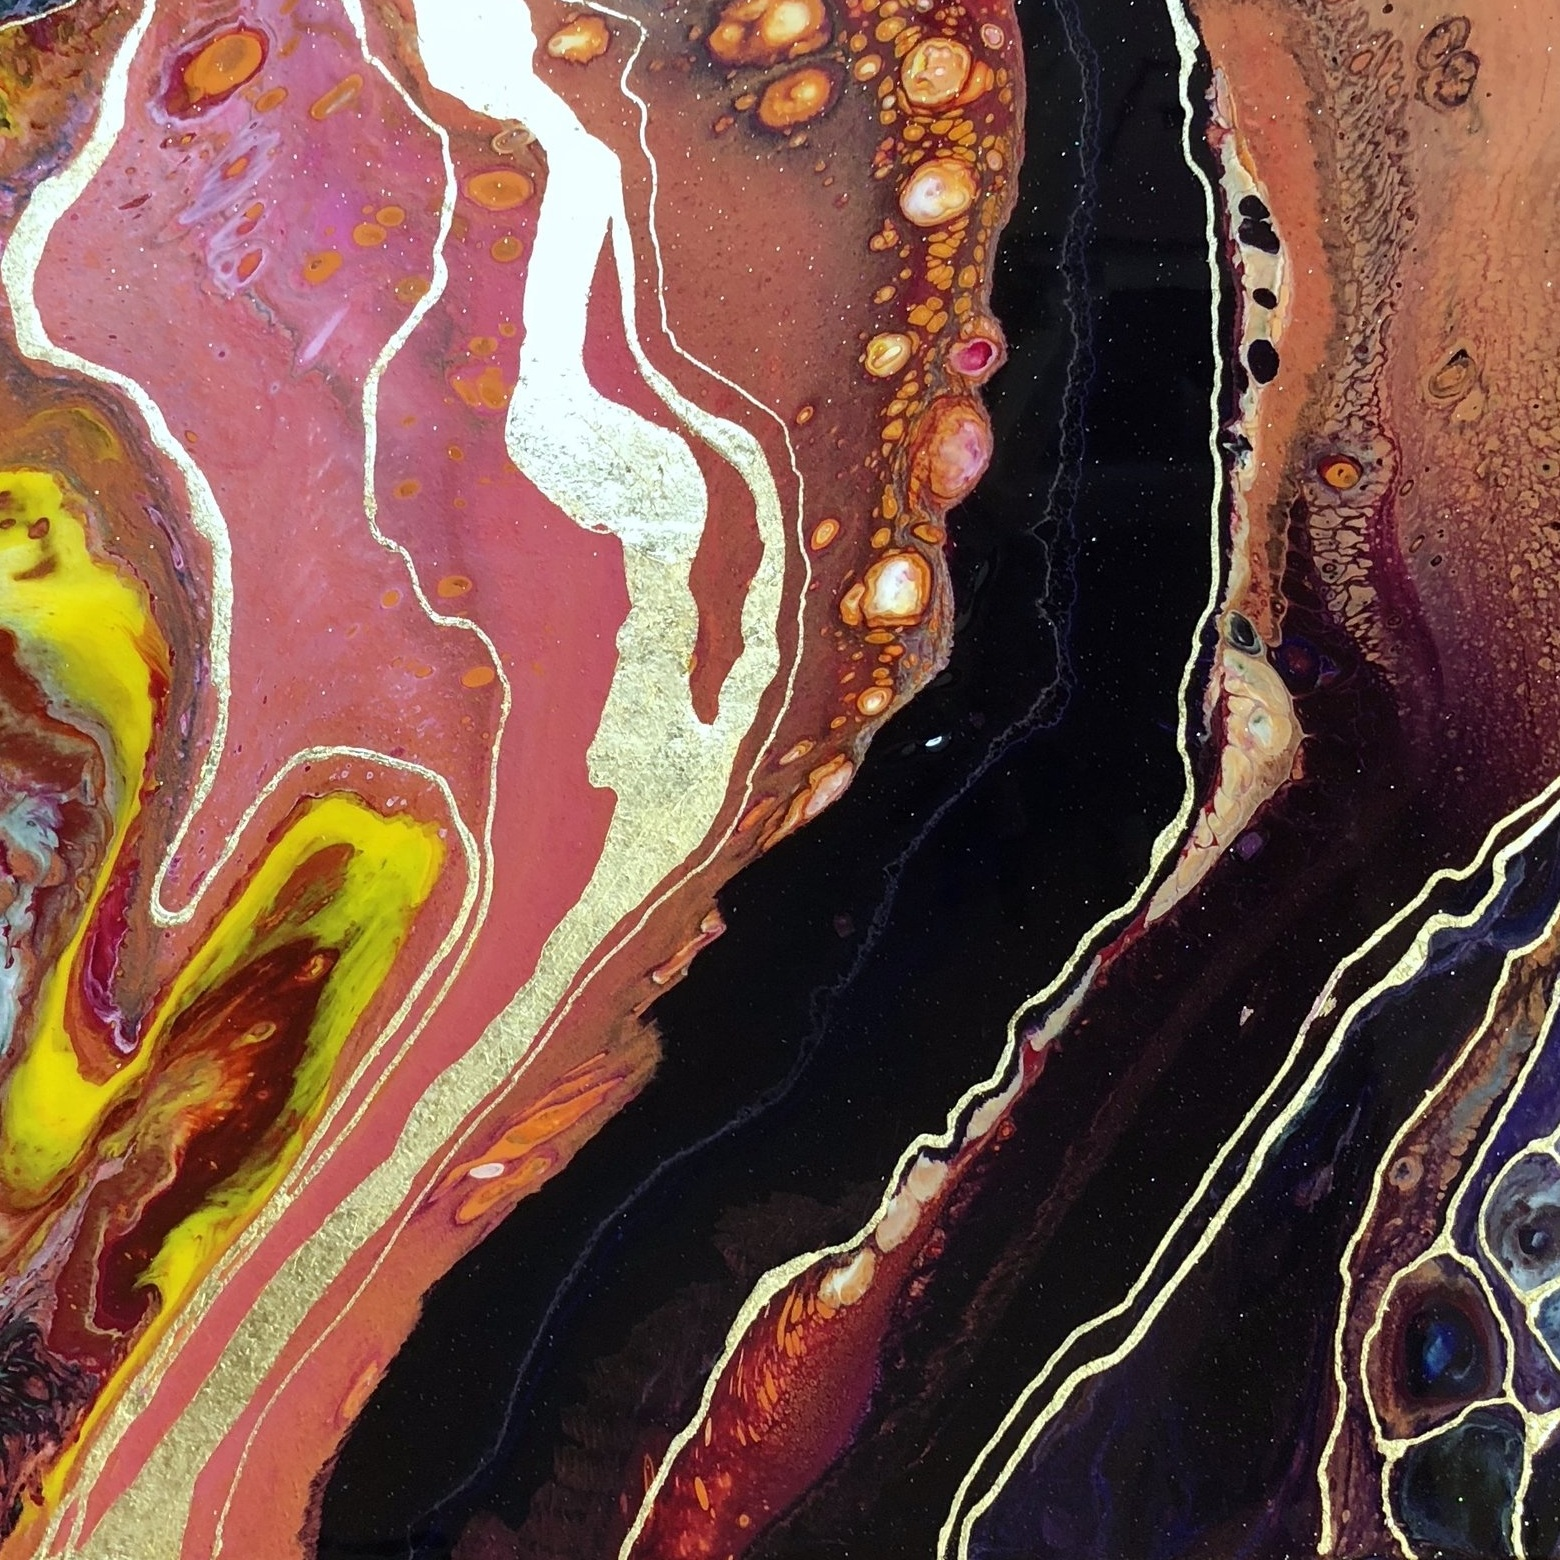 From stones to aerial photos to galaxies, fluid abstracts all look like something in nature.